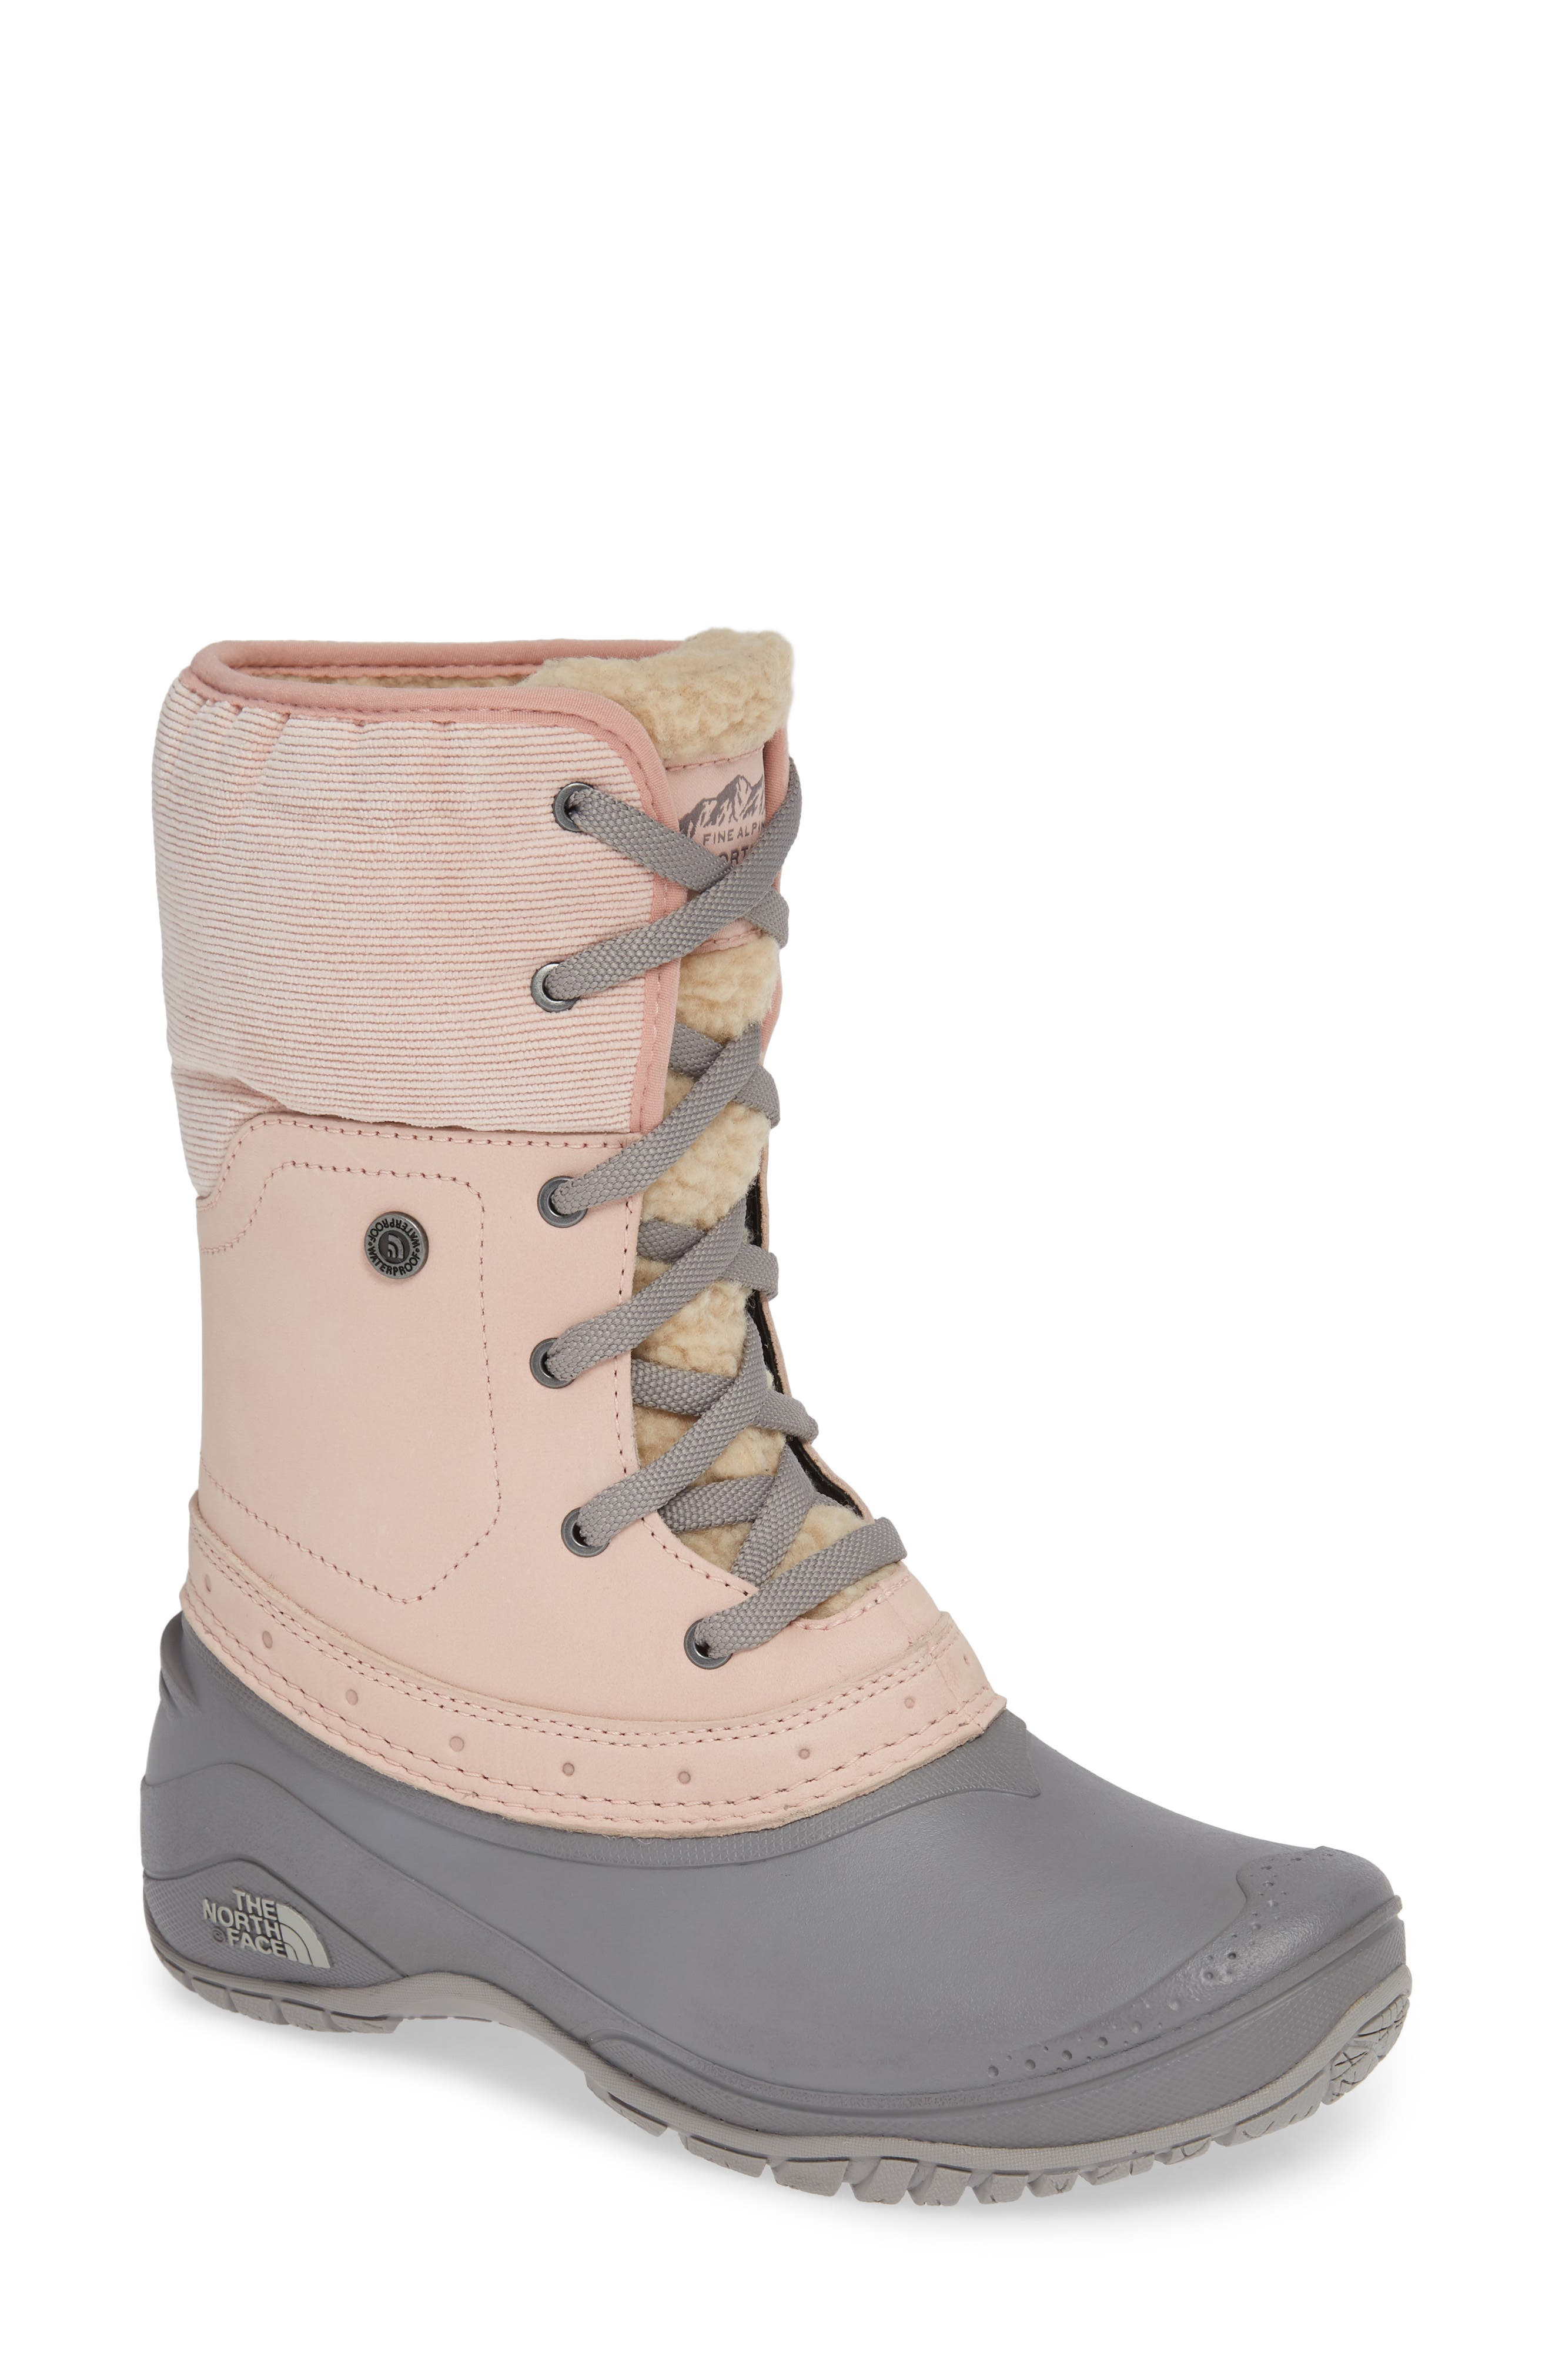 Shellista Roll Cuff Waterproof Insulated Winter Boot, Main, color, MISTY ROSE/ Q-SILVER GREY